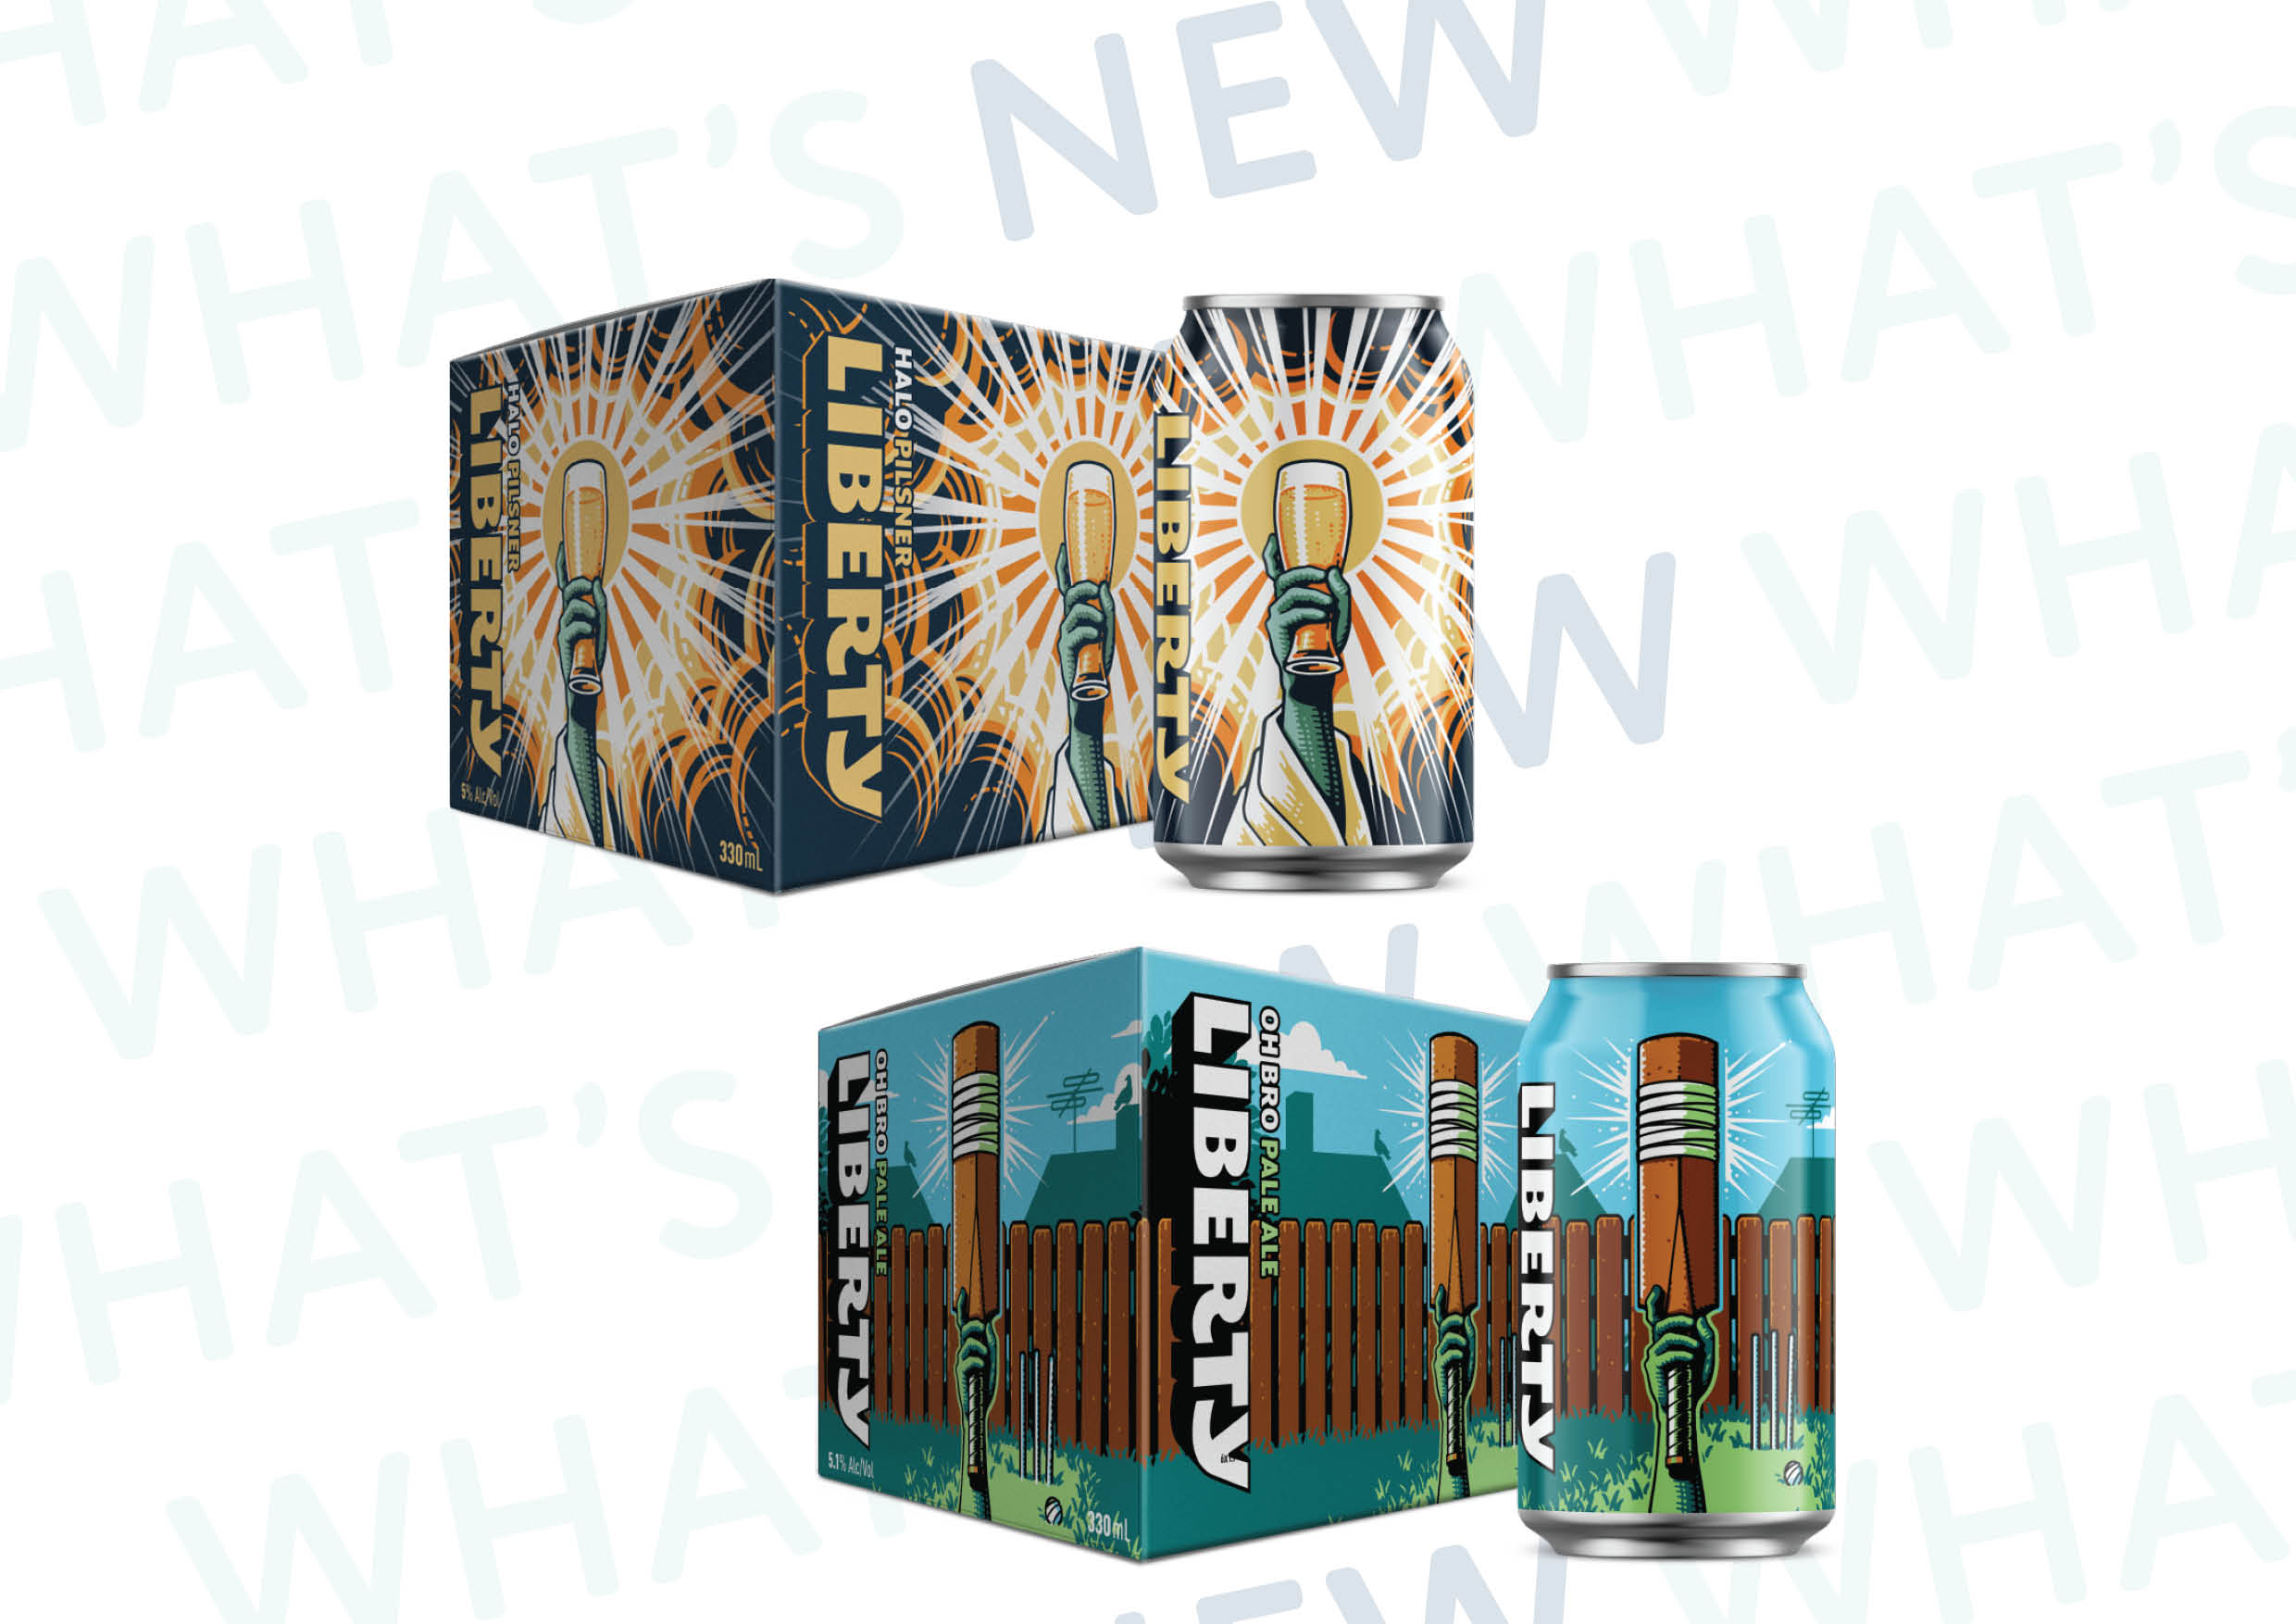 Hit the Cans With Liberty's New Look